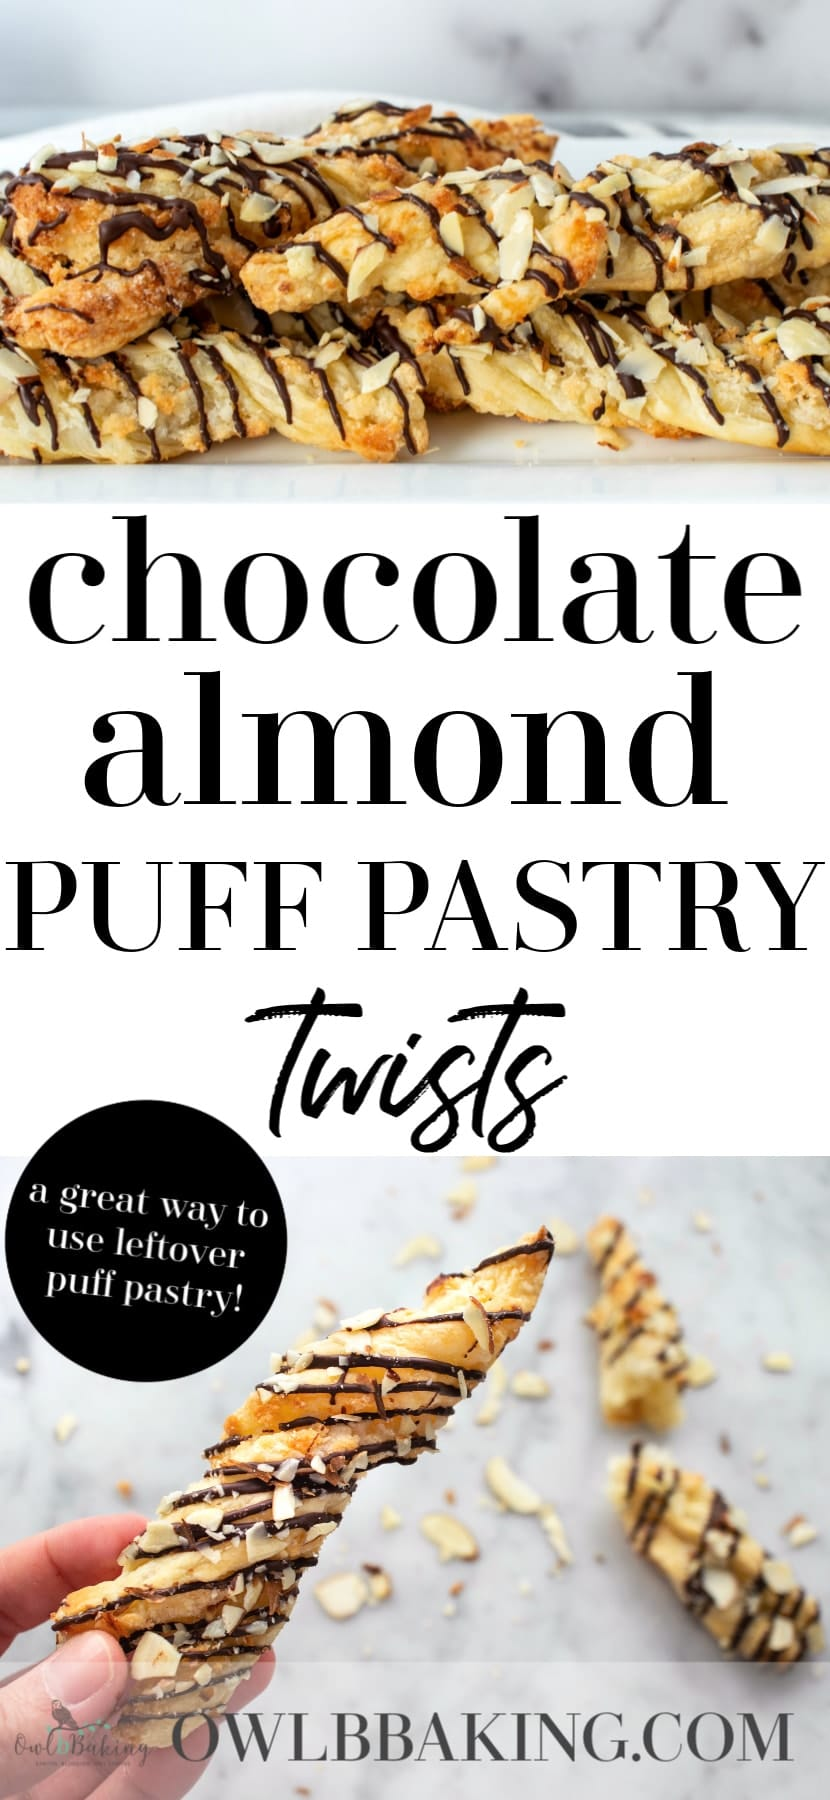 Chocolate Almond Puff Pastry Twists